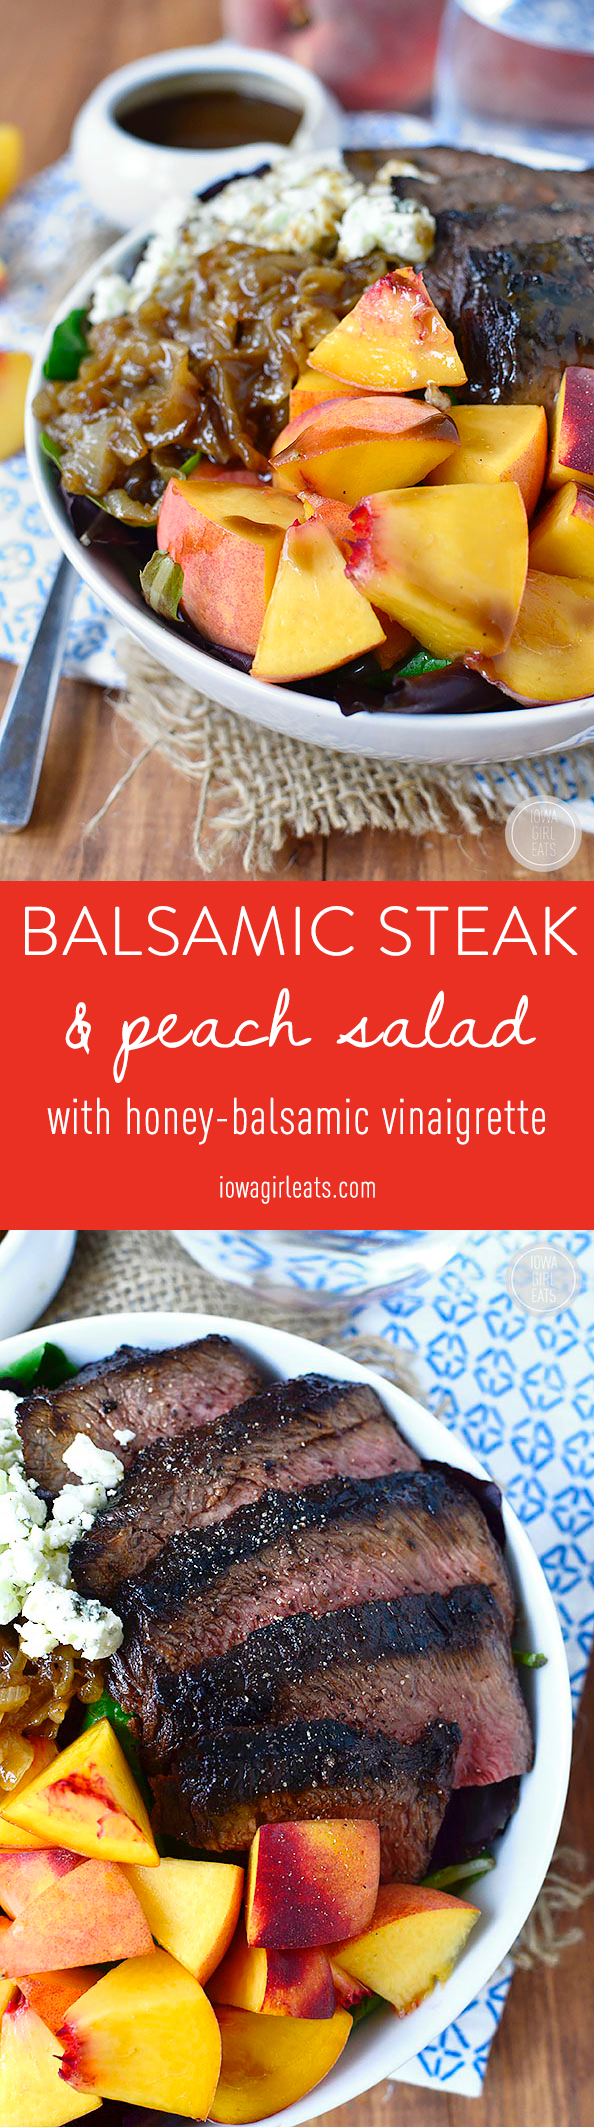 Balsamic Steak and Peach Salad is a fresh and filling entree salad with the sweet and savory flavors of balsamic vinegar. #glutenfree | iowagirleats.com